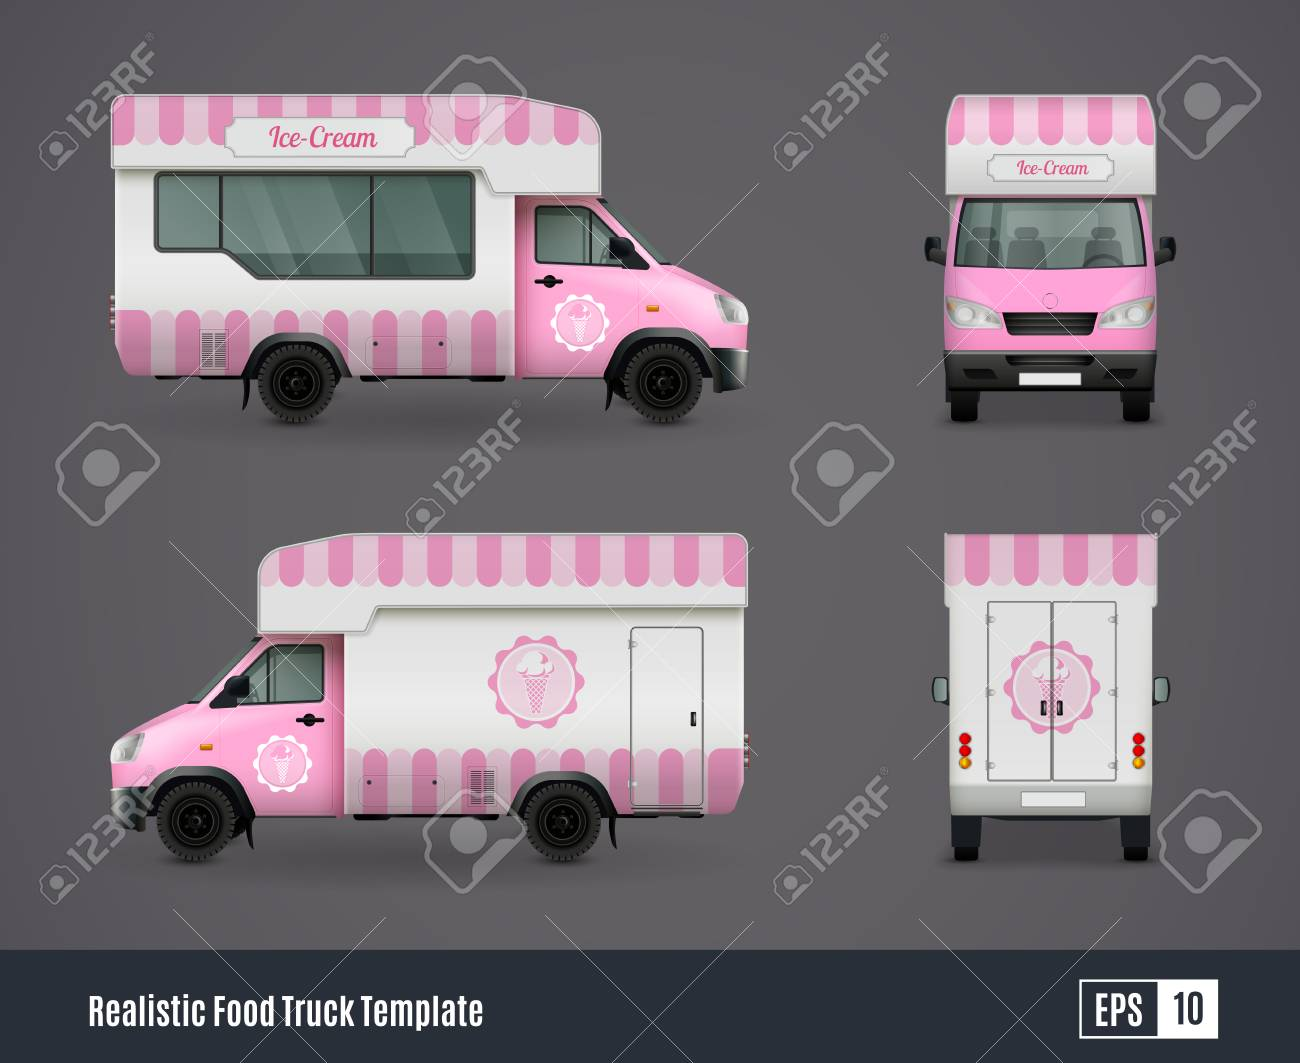 food trucks realistic ad template design composition of four